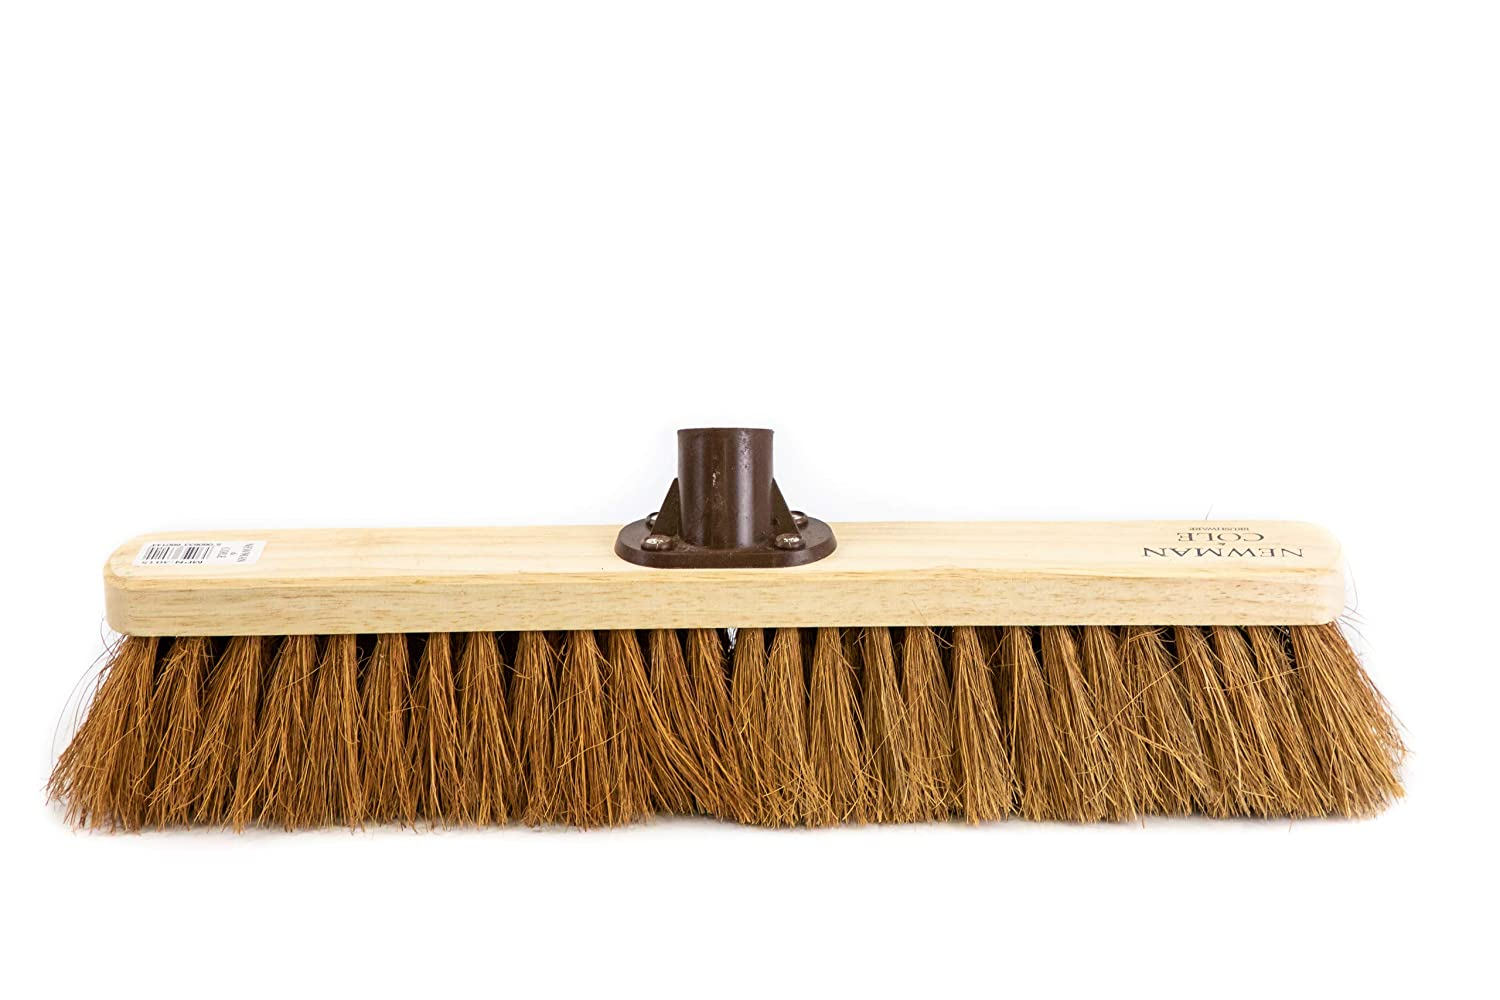 Newman and Cole 18' Wooden Broom Head - Replacement Wooden Broom Head for Outdoor Garden Yard Brush Sweeping - Wood Brush Head Fitted Fixing Bracket Connector (Soft Natural Coco)